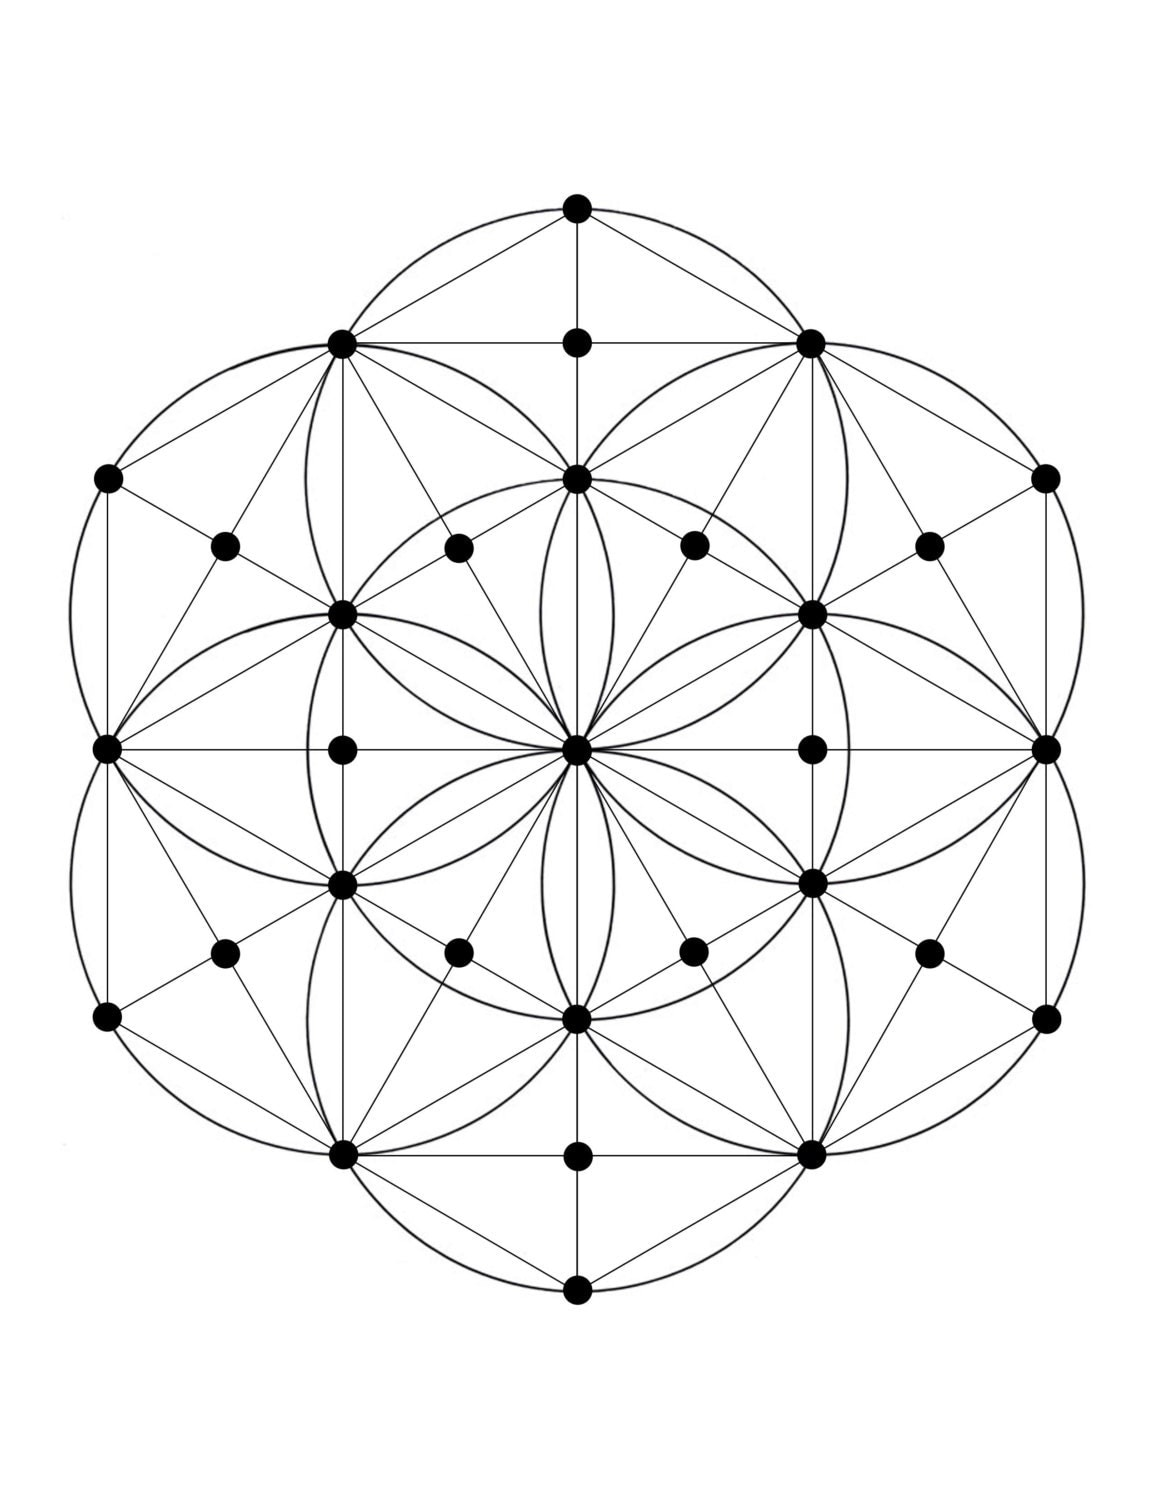 It's just a picture of Gratifying Printable Crystal Grid